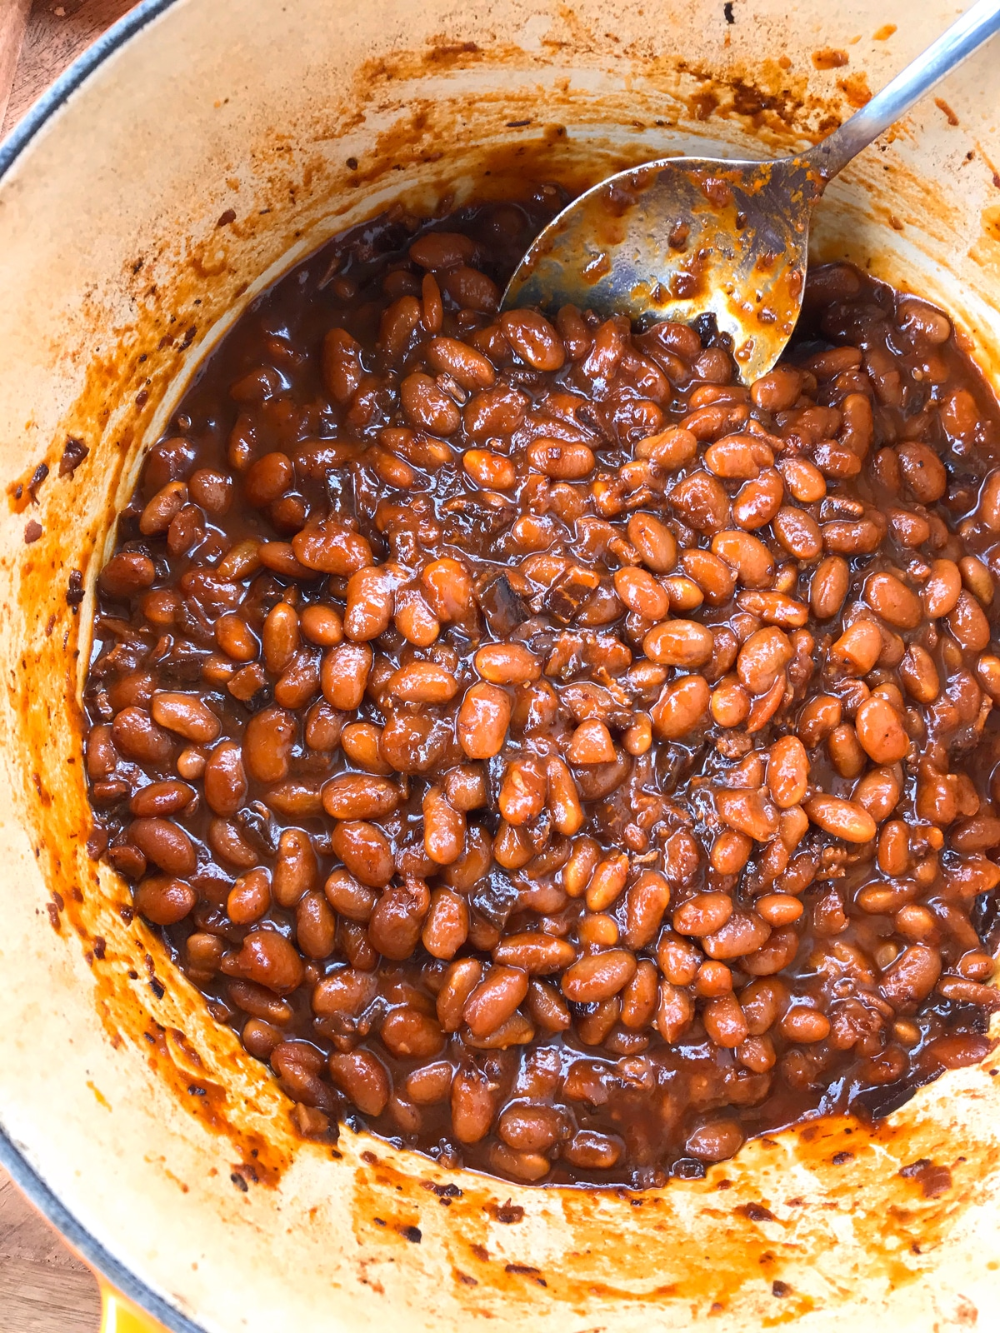 Old Fashioned Baked Beans Recipe Baked Beans Classic Baked Beans Recipe Beans